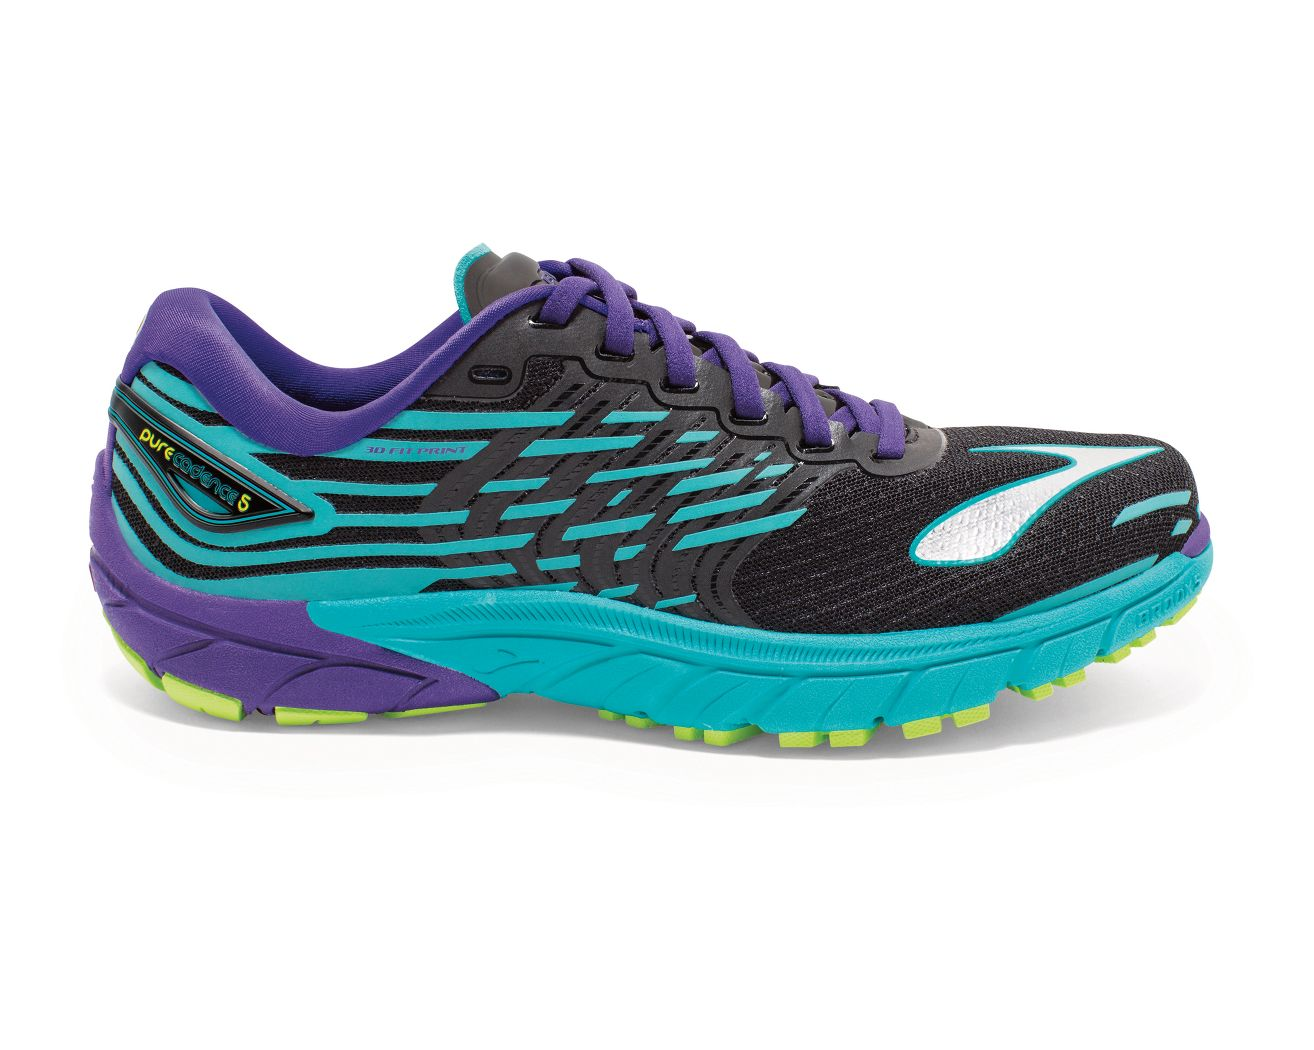 newest 95d75 be7c6 Nike Free RN Distance W Chaussures running femme ...